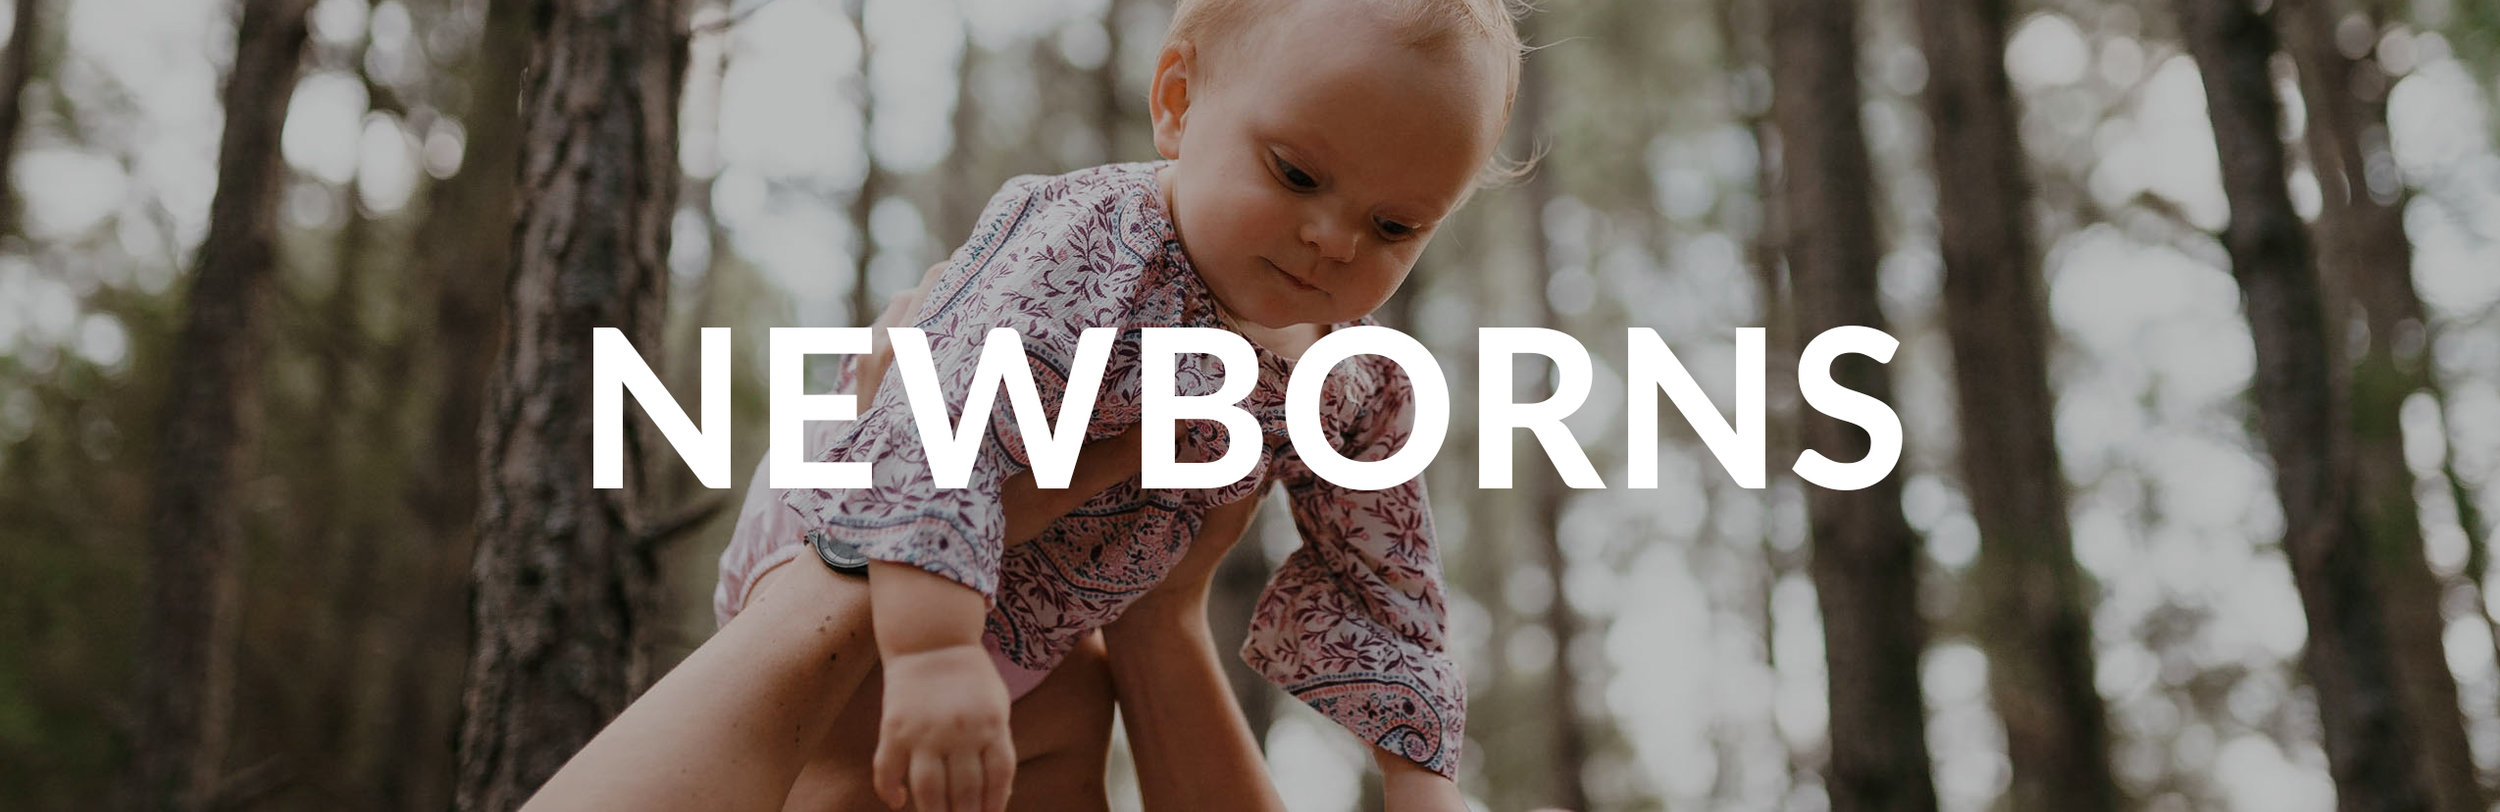 chiropractic care for newborns photo